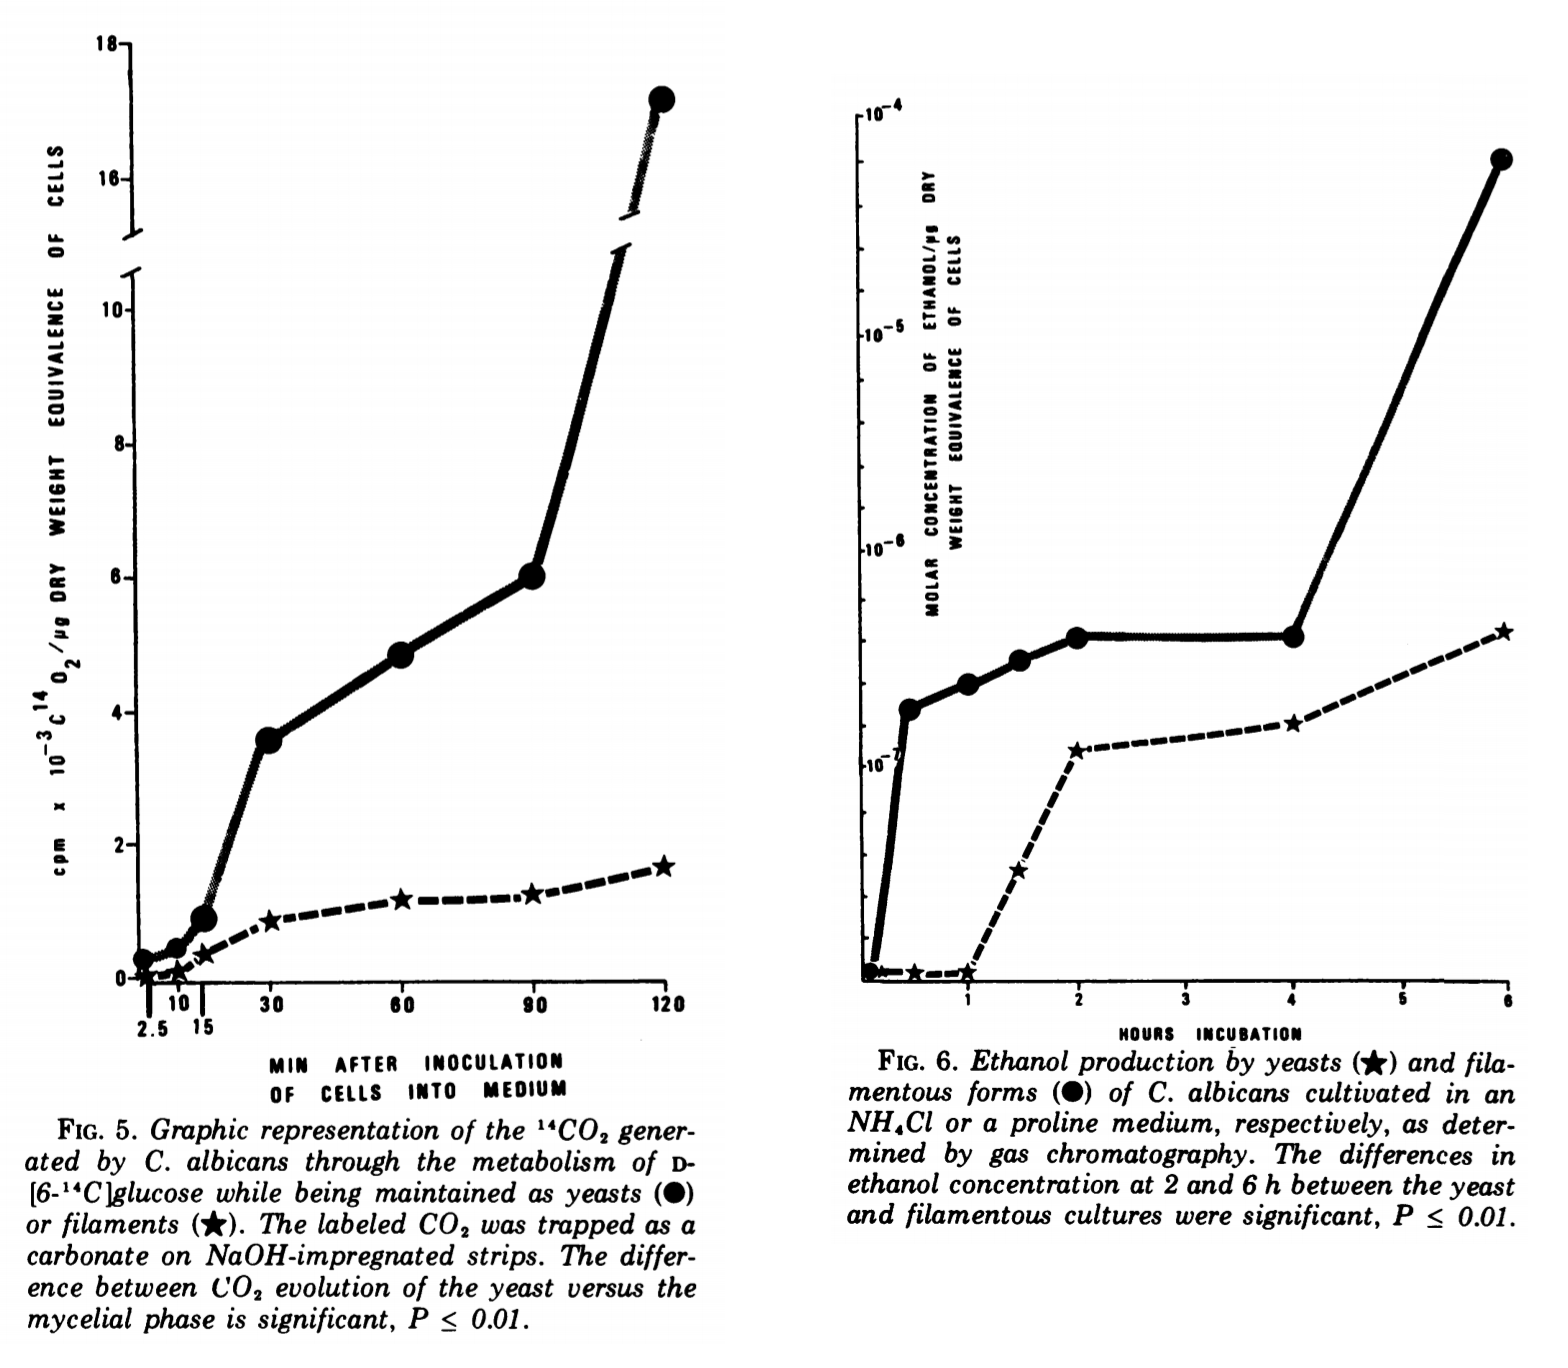 LEFT CHART: C. albicans CO<sub>2</sub> production over time. The circle line shows regular cells, a star line shows hyphal cells. RIGHT CHART: C. albicans alcohol production over time. The star line shows regular cells, a circle line shows hyphal cells.